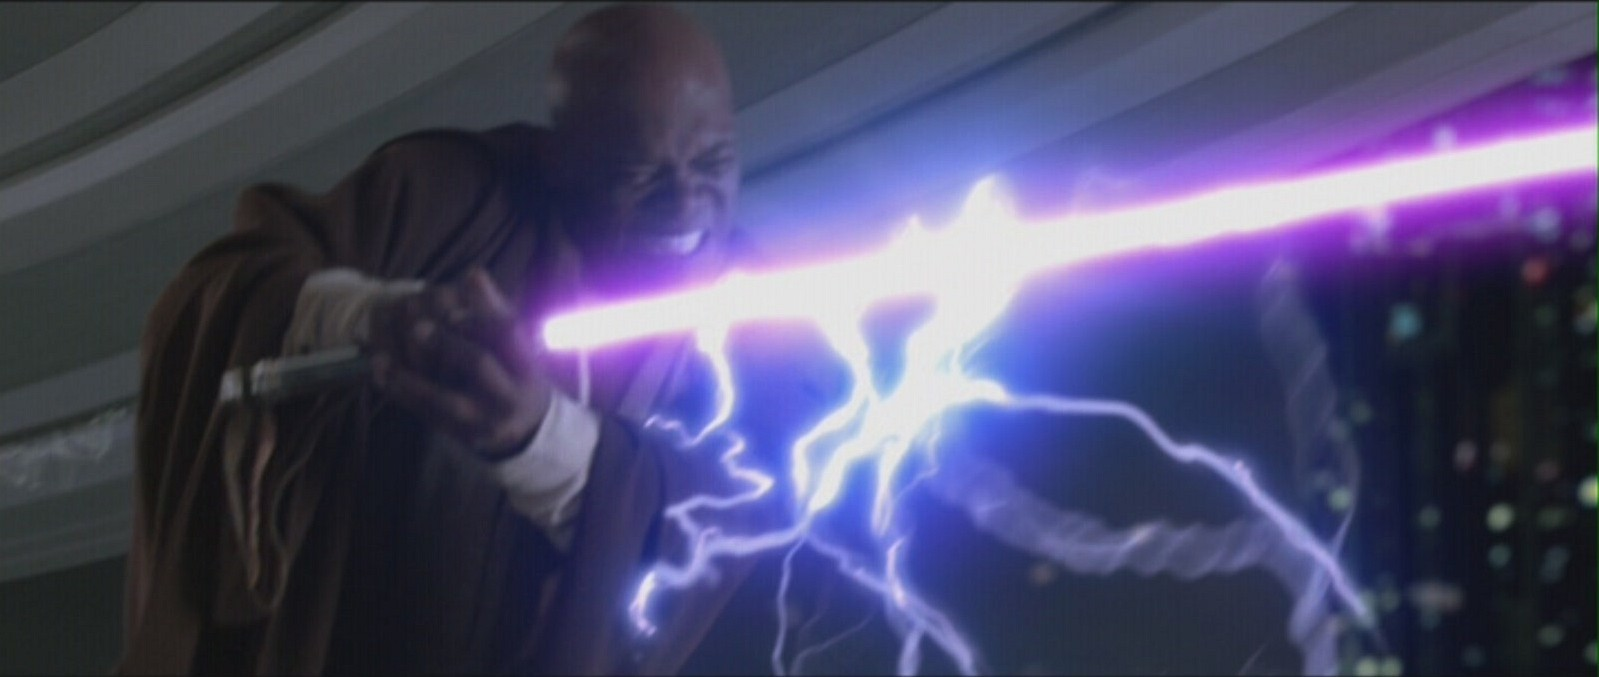 Mace Windu images Star Wars Revenge of the Sith HD wallpaper and 1599x677